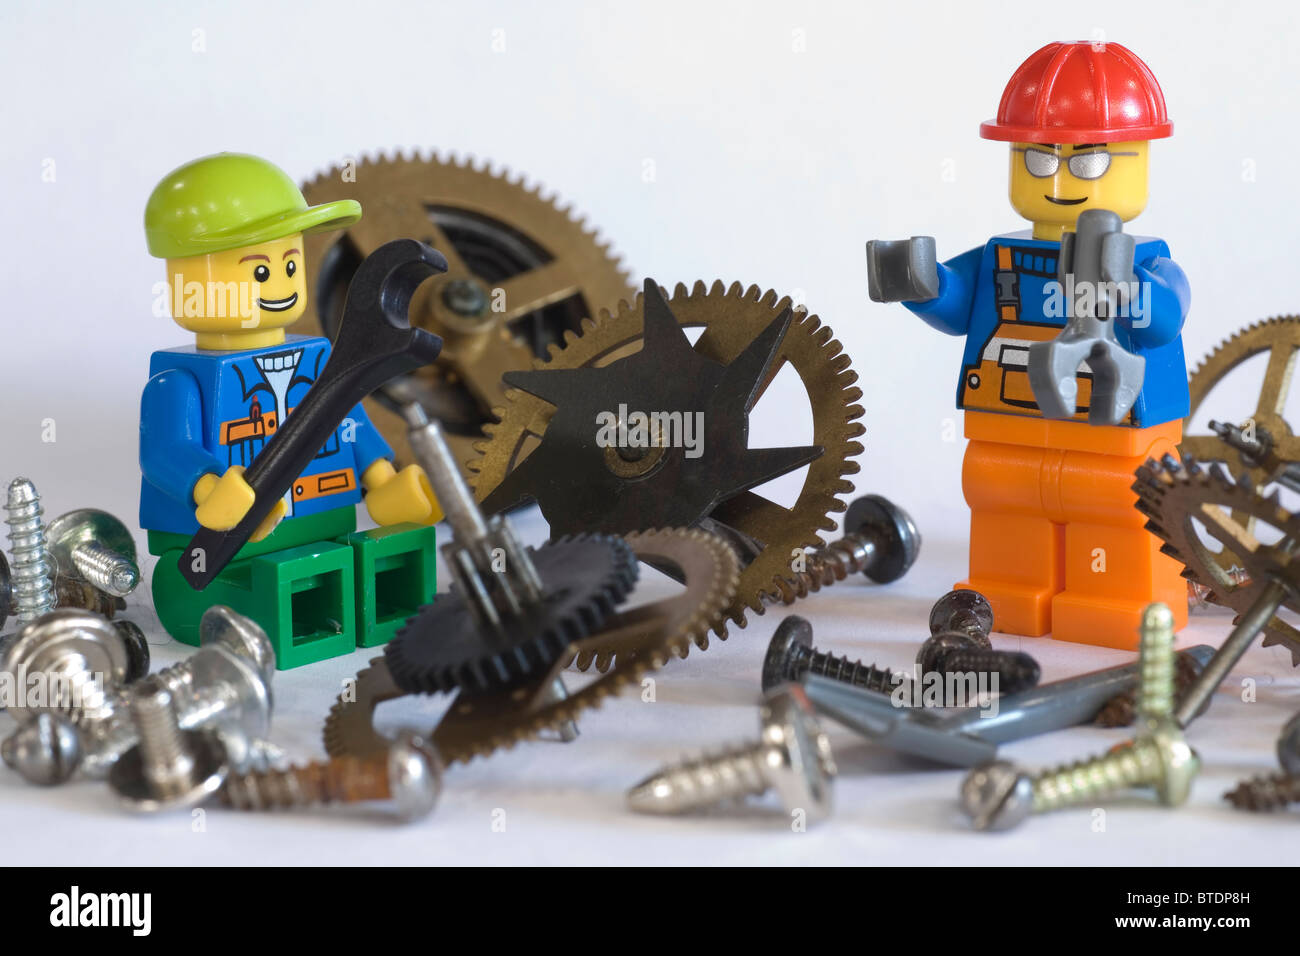 Lego engineers working with machinery components Stock Photo